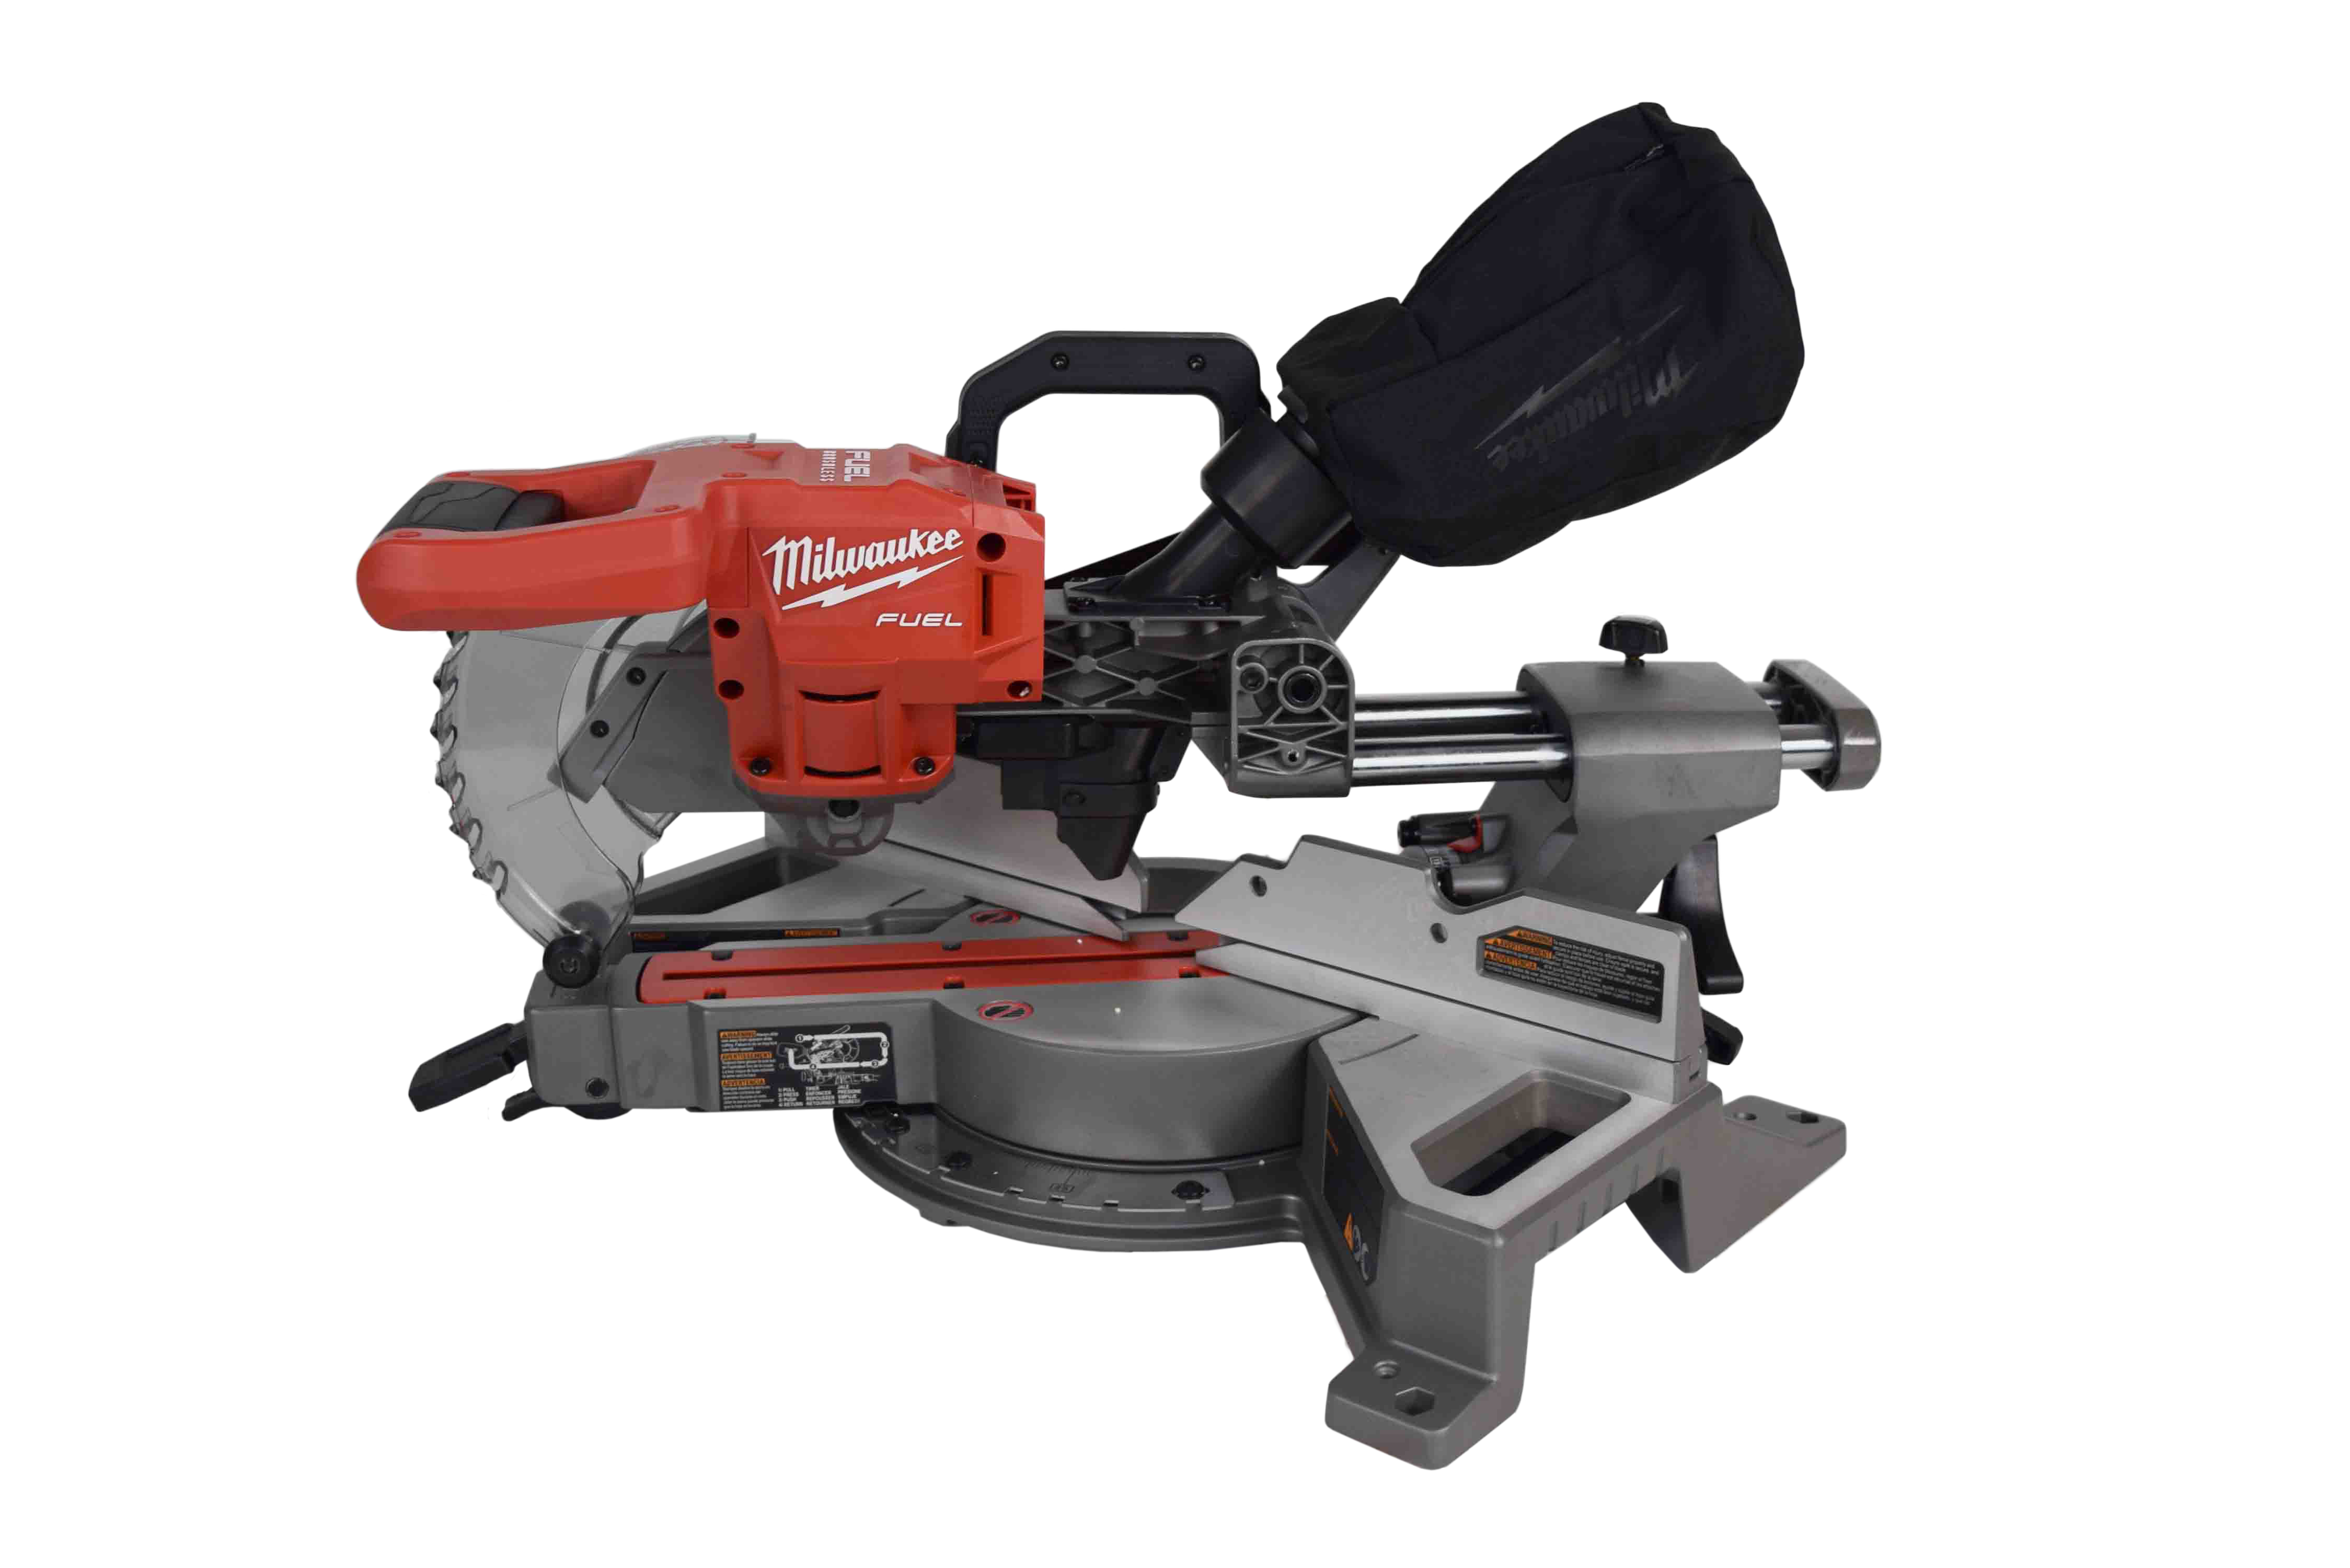 Milwaukee-2733-21-18-volt-7-1-4-inch-M18-Dual-Bevel-Sliding-Miter-Saw-Kit-image-2